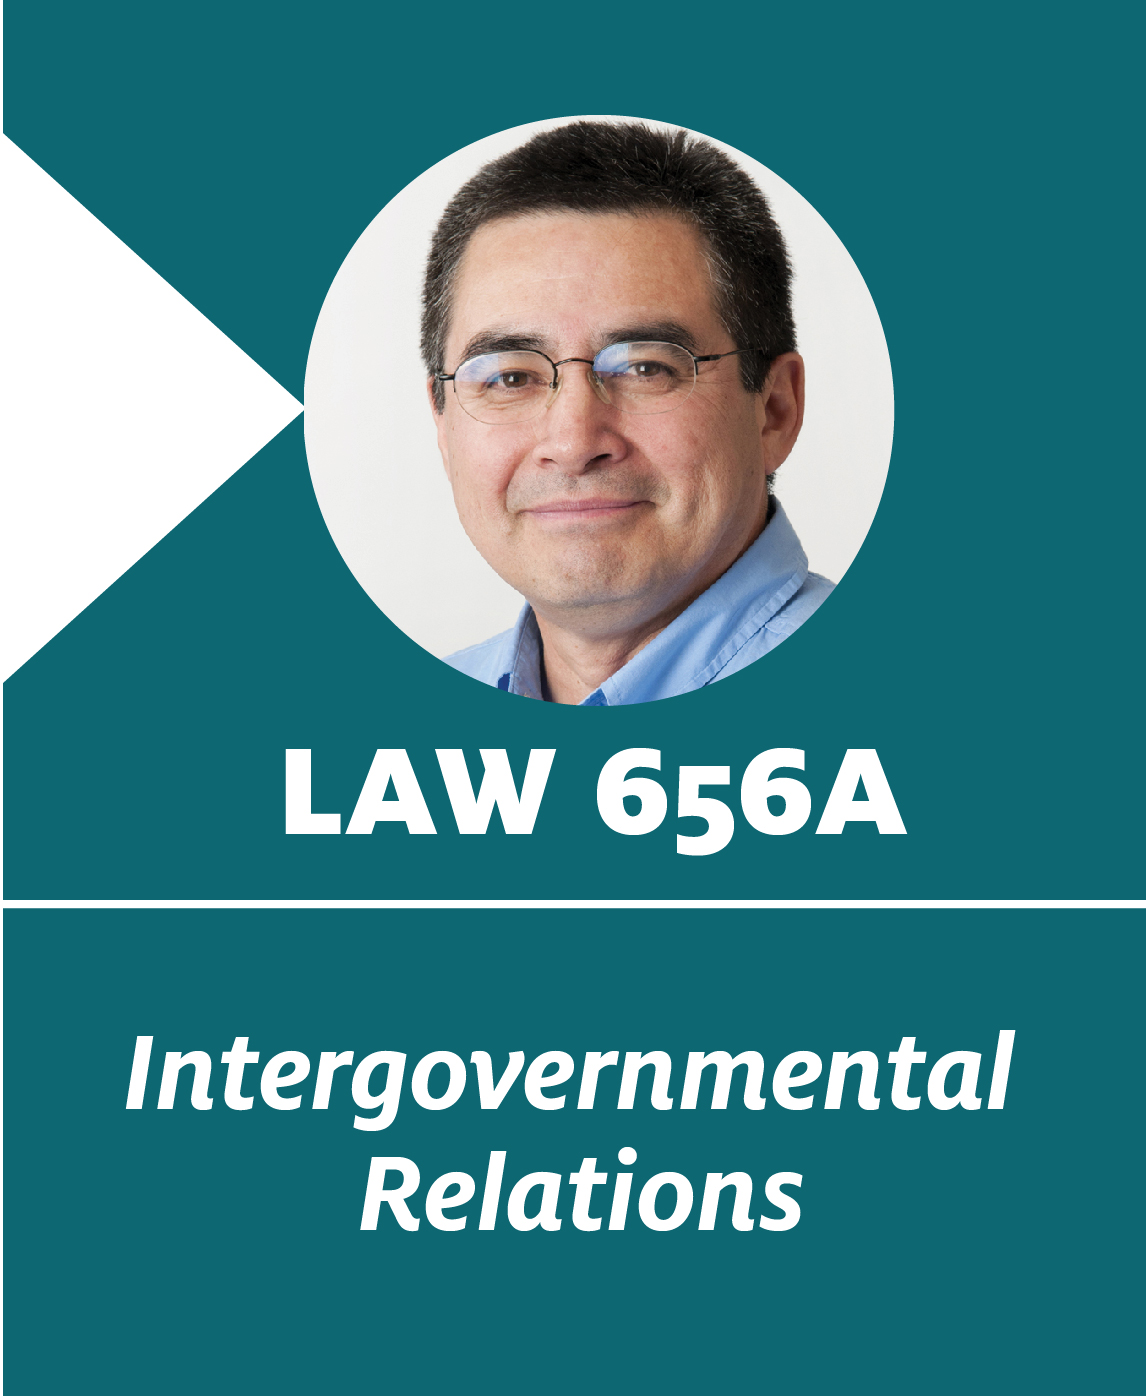 intergovernmental relations The division of intergovernmental relations serves primarily as the liaison between all levels of government on behalf of the county executive.